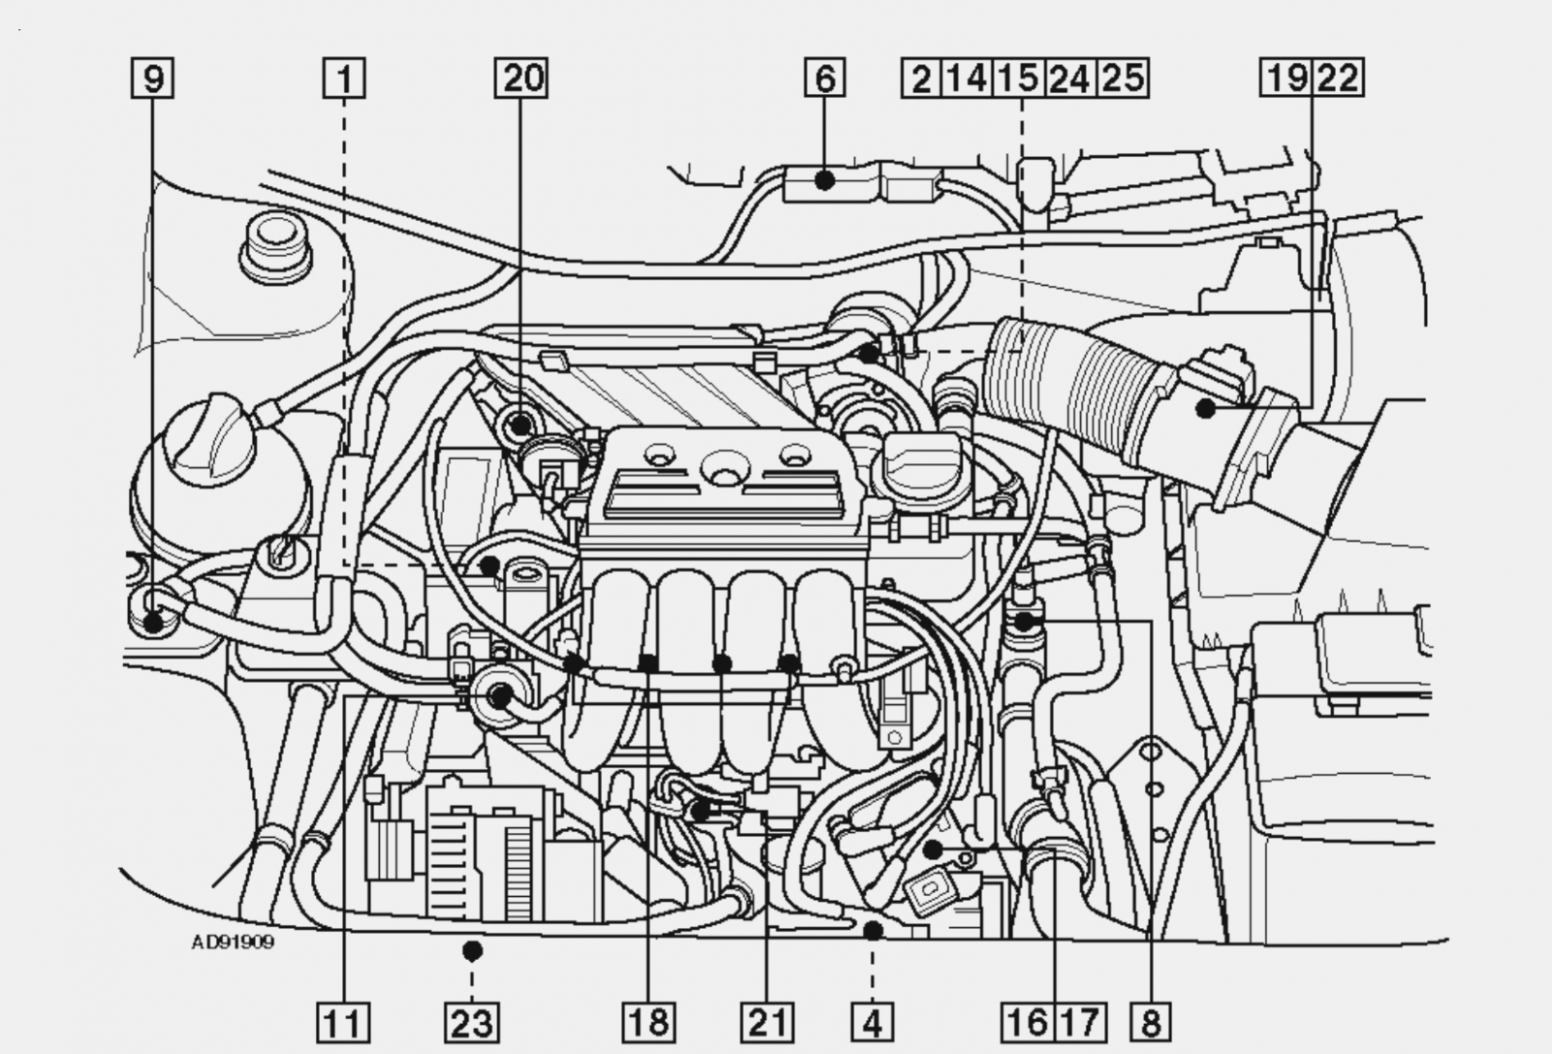 Vw Up Engine Diagram Guide Vw Up Engine Diagram Guide